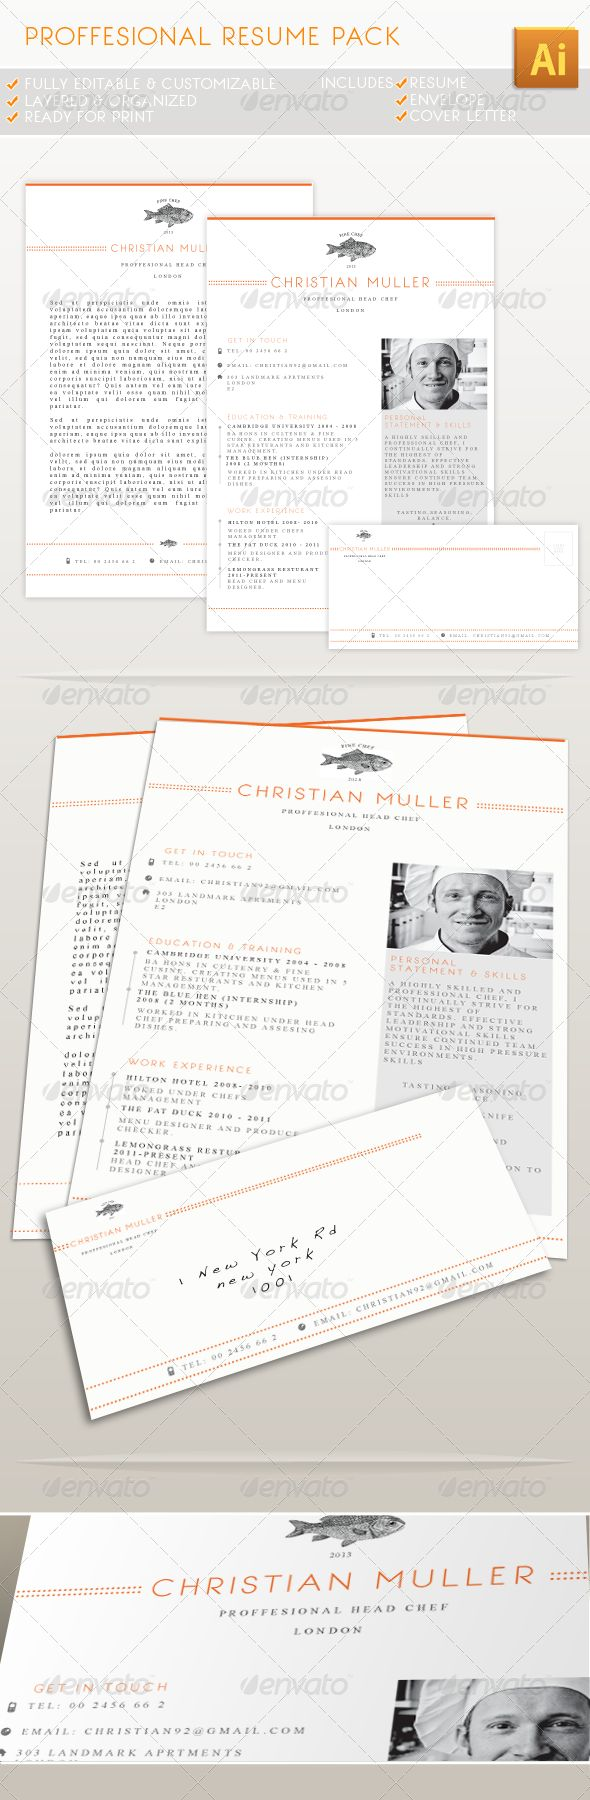 professional resume pack - Samples Of Professional Resumes